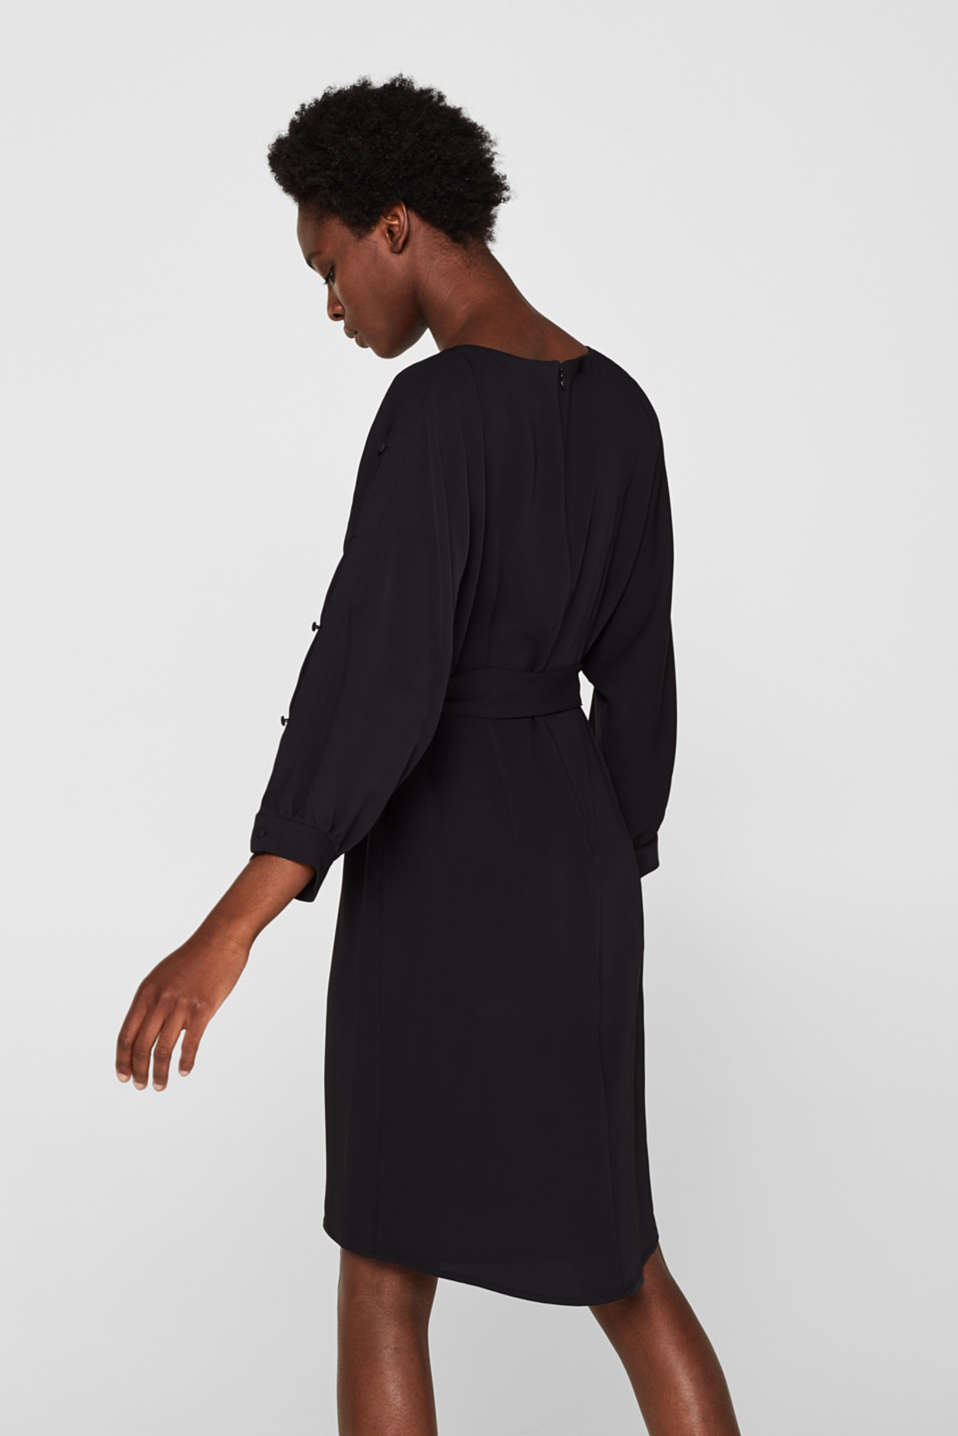 Woven dress with batwing sleeves and a tie-around belt, BLACK, detail image number 2